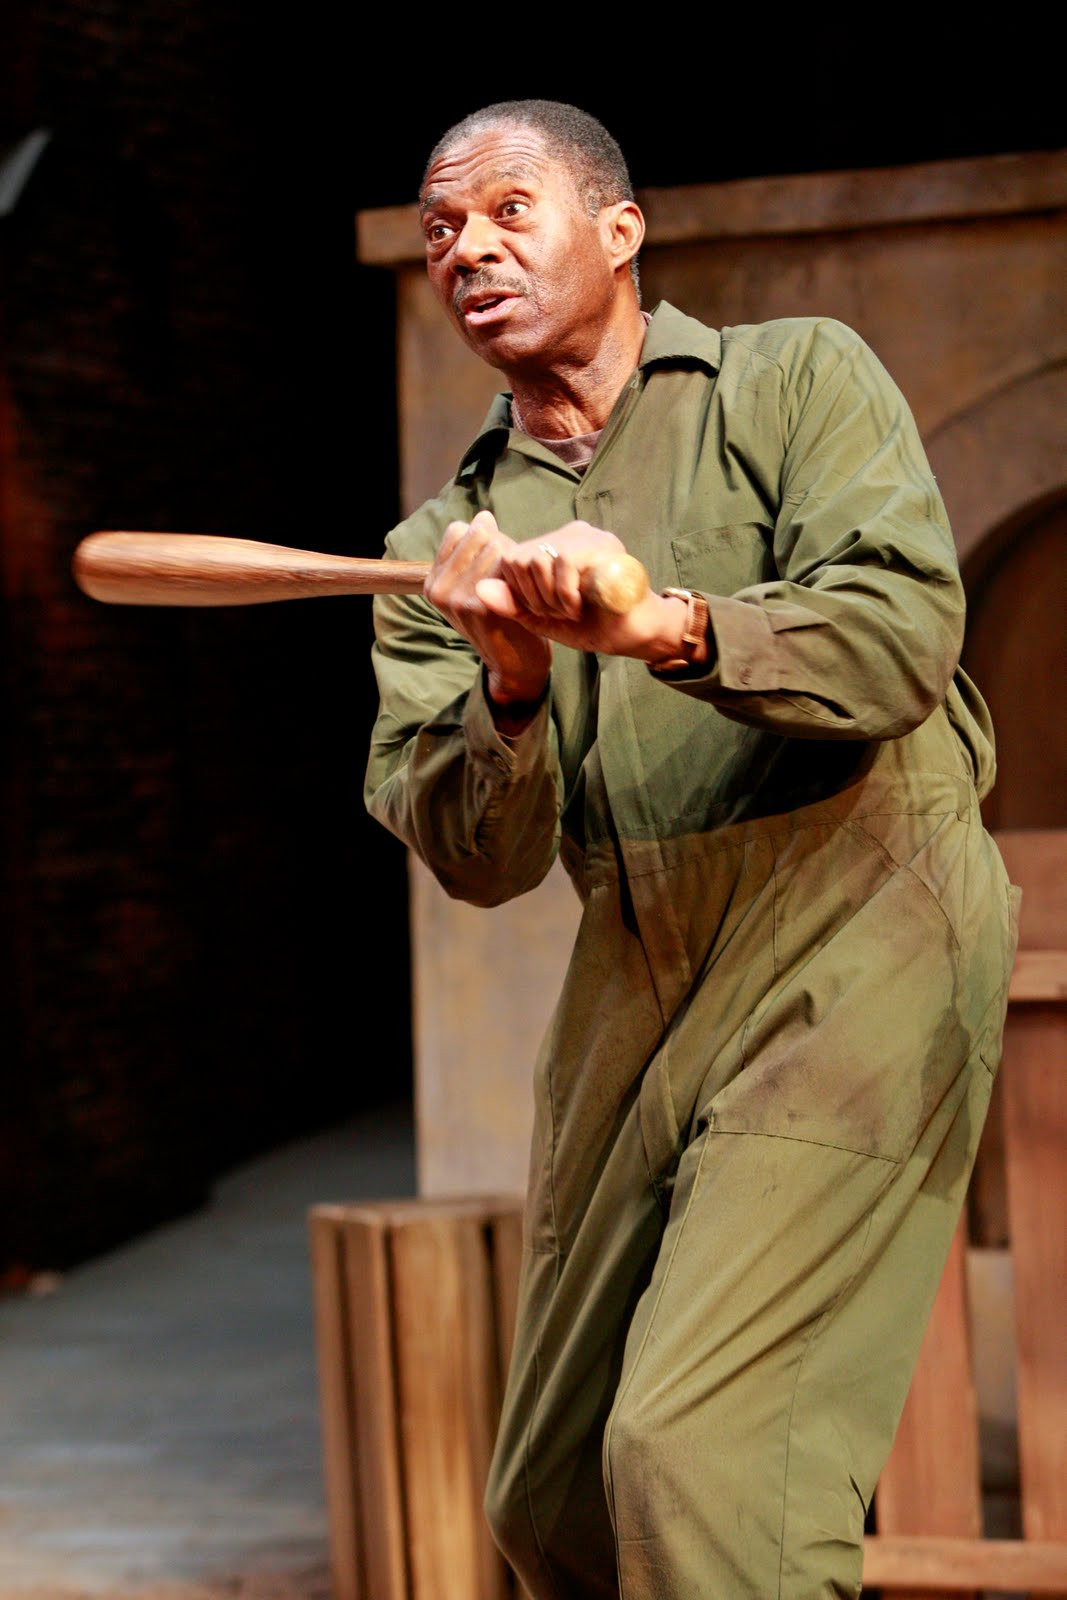 character analysis of jim in fences a play by august wilson A summary of themes in august wilson's fences literary analysis to his family in other ways throughout the play with sayings that represent his.